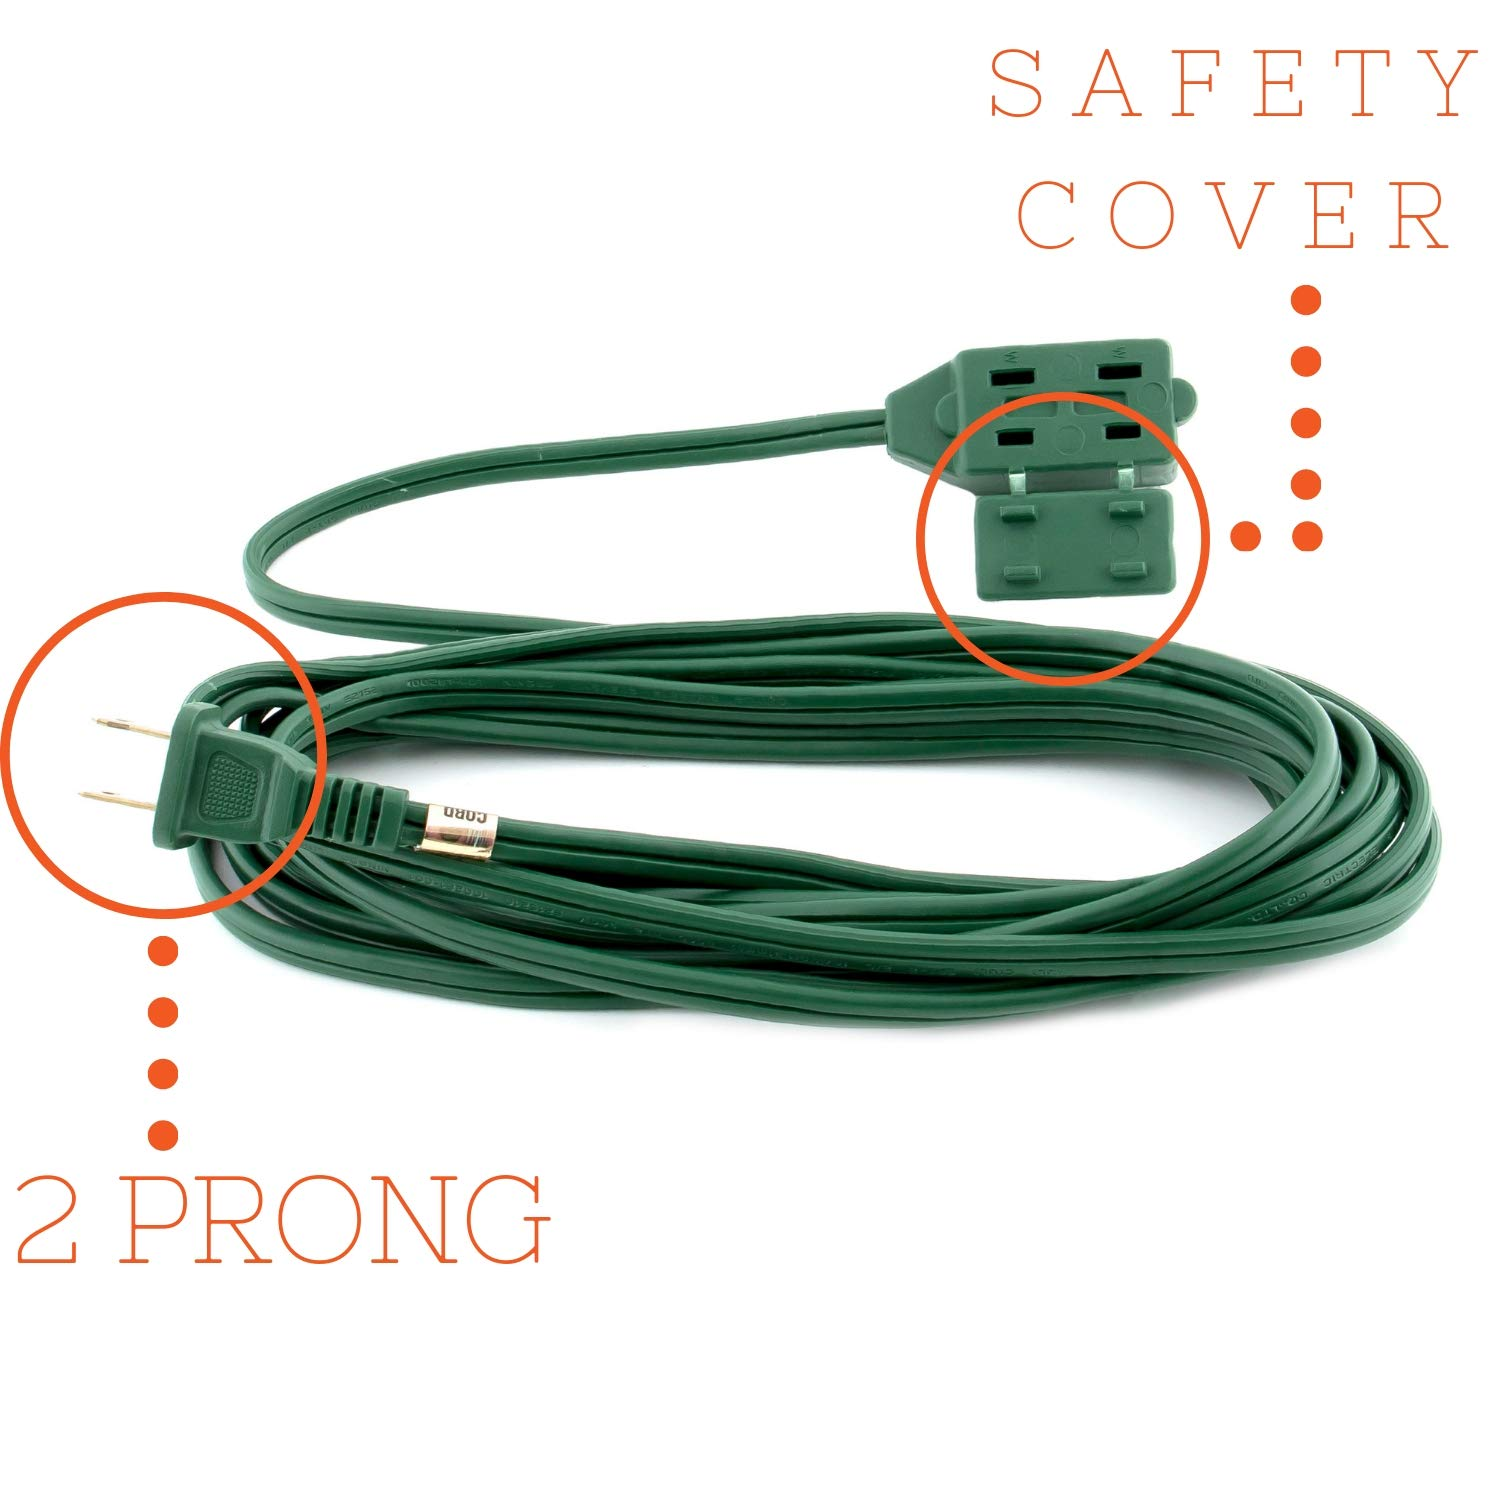 3 2-Prong Outlets 2 Pack CSA Certified Green 13 Amp 16 Gauge Polarized 10 FT Indoor Extension Cord